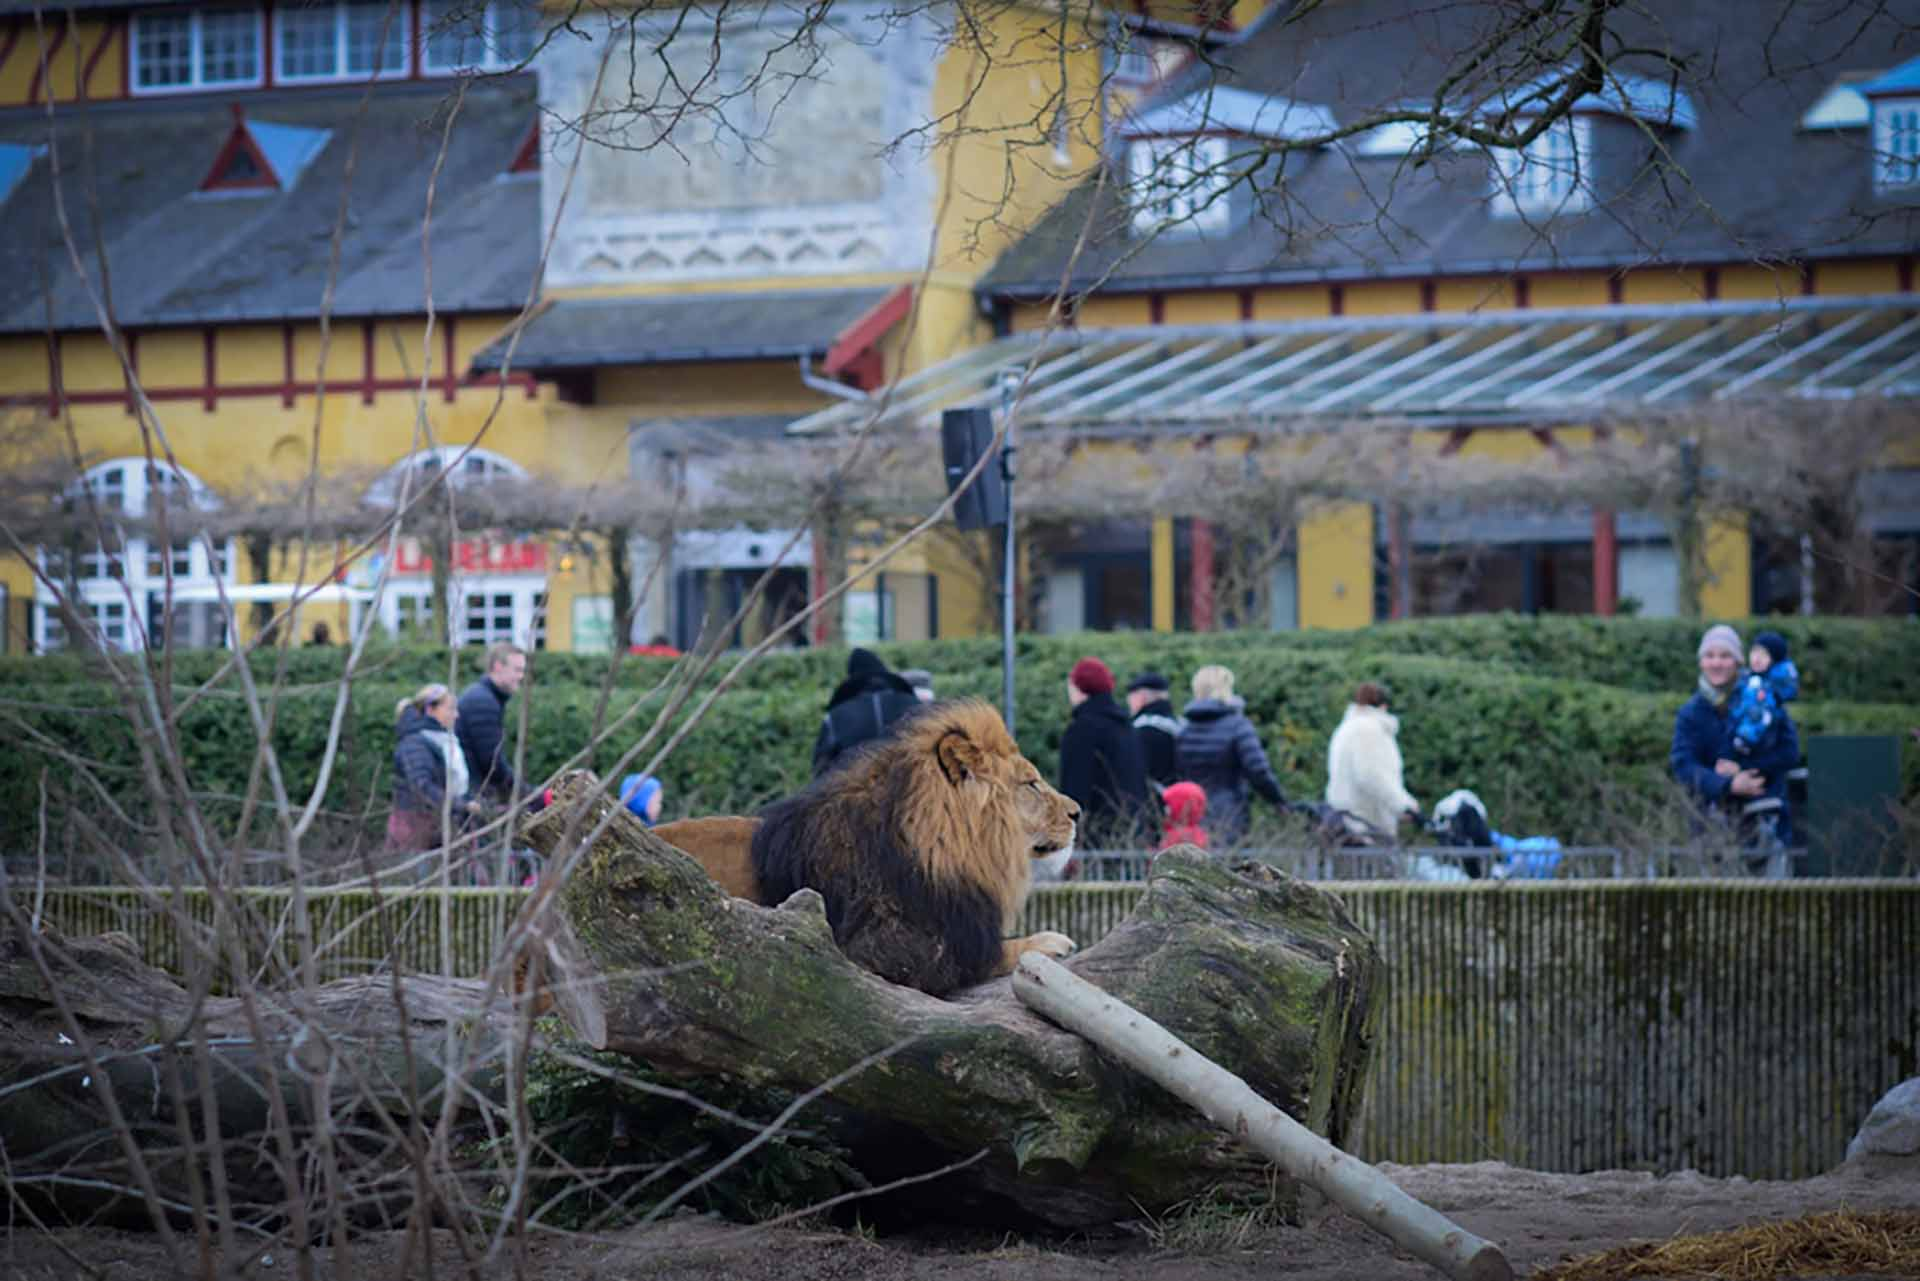 People watching a lion at the Copenhagen Zoo